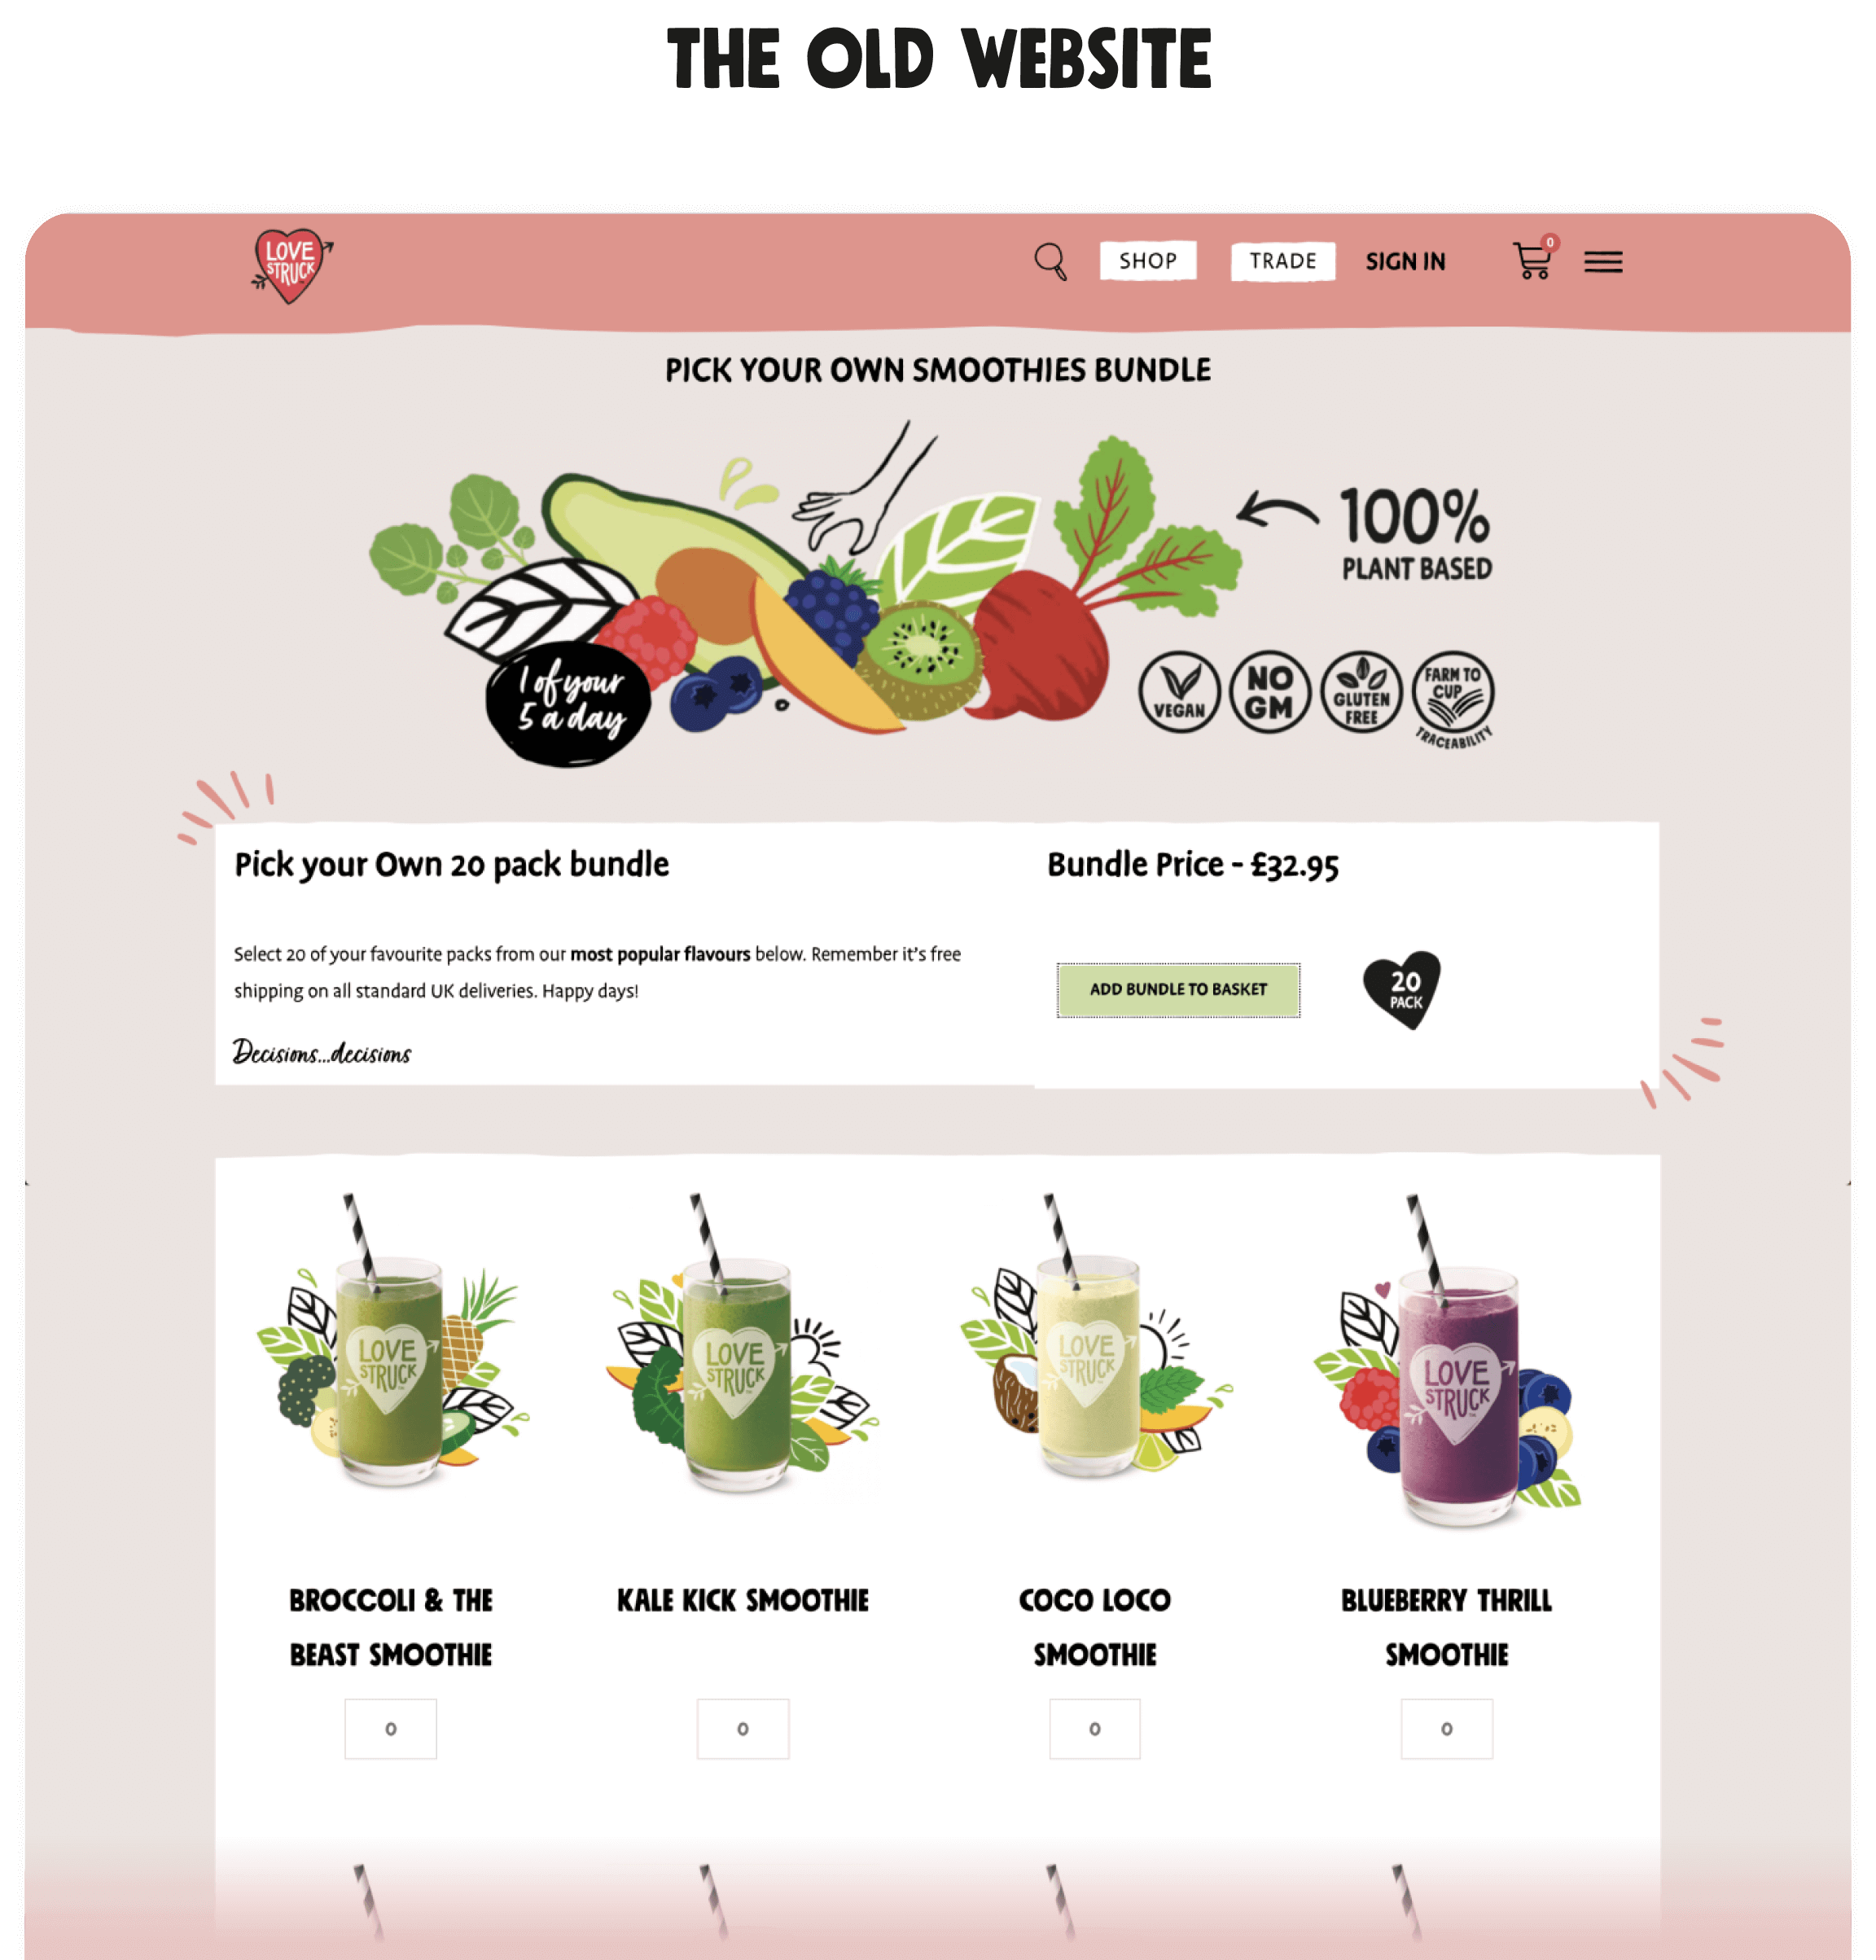 Our client's previous bundle page we redesigned and built to increase conversions